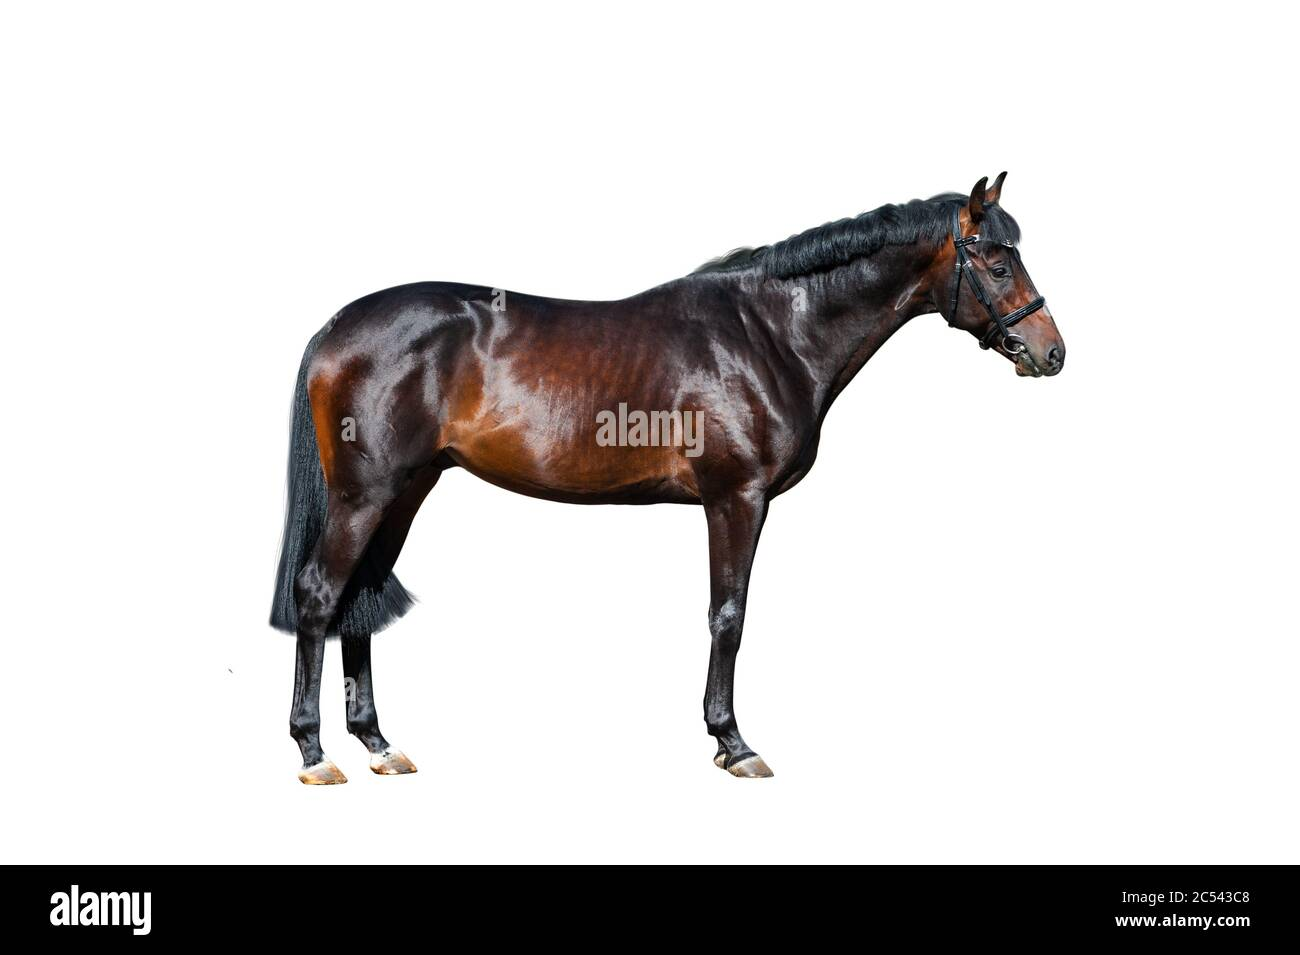 Beautiful Purebred Stallion Standing On White Dark Bay Horse Isolated Over A White Background Bay Horse In Briddle Standing High Quality Isolation Stock Photo Alamy